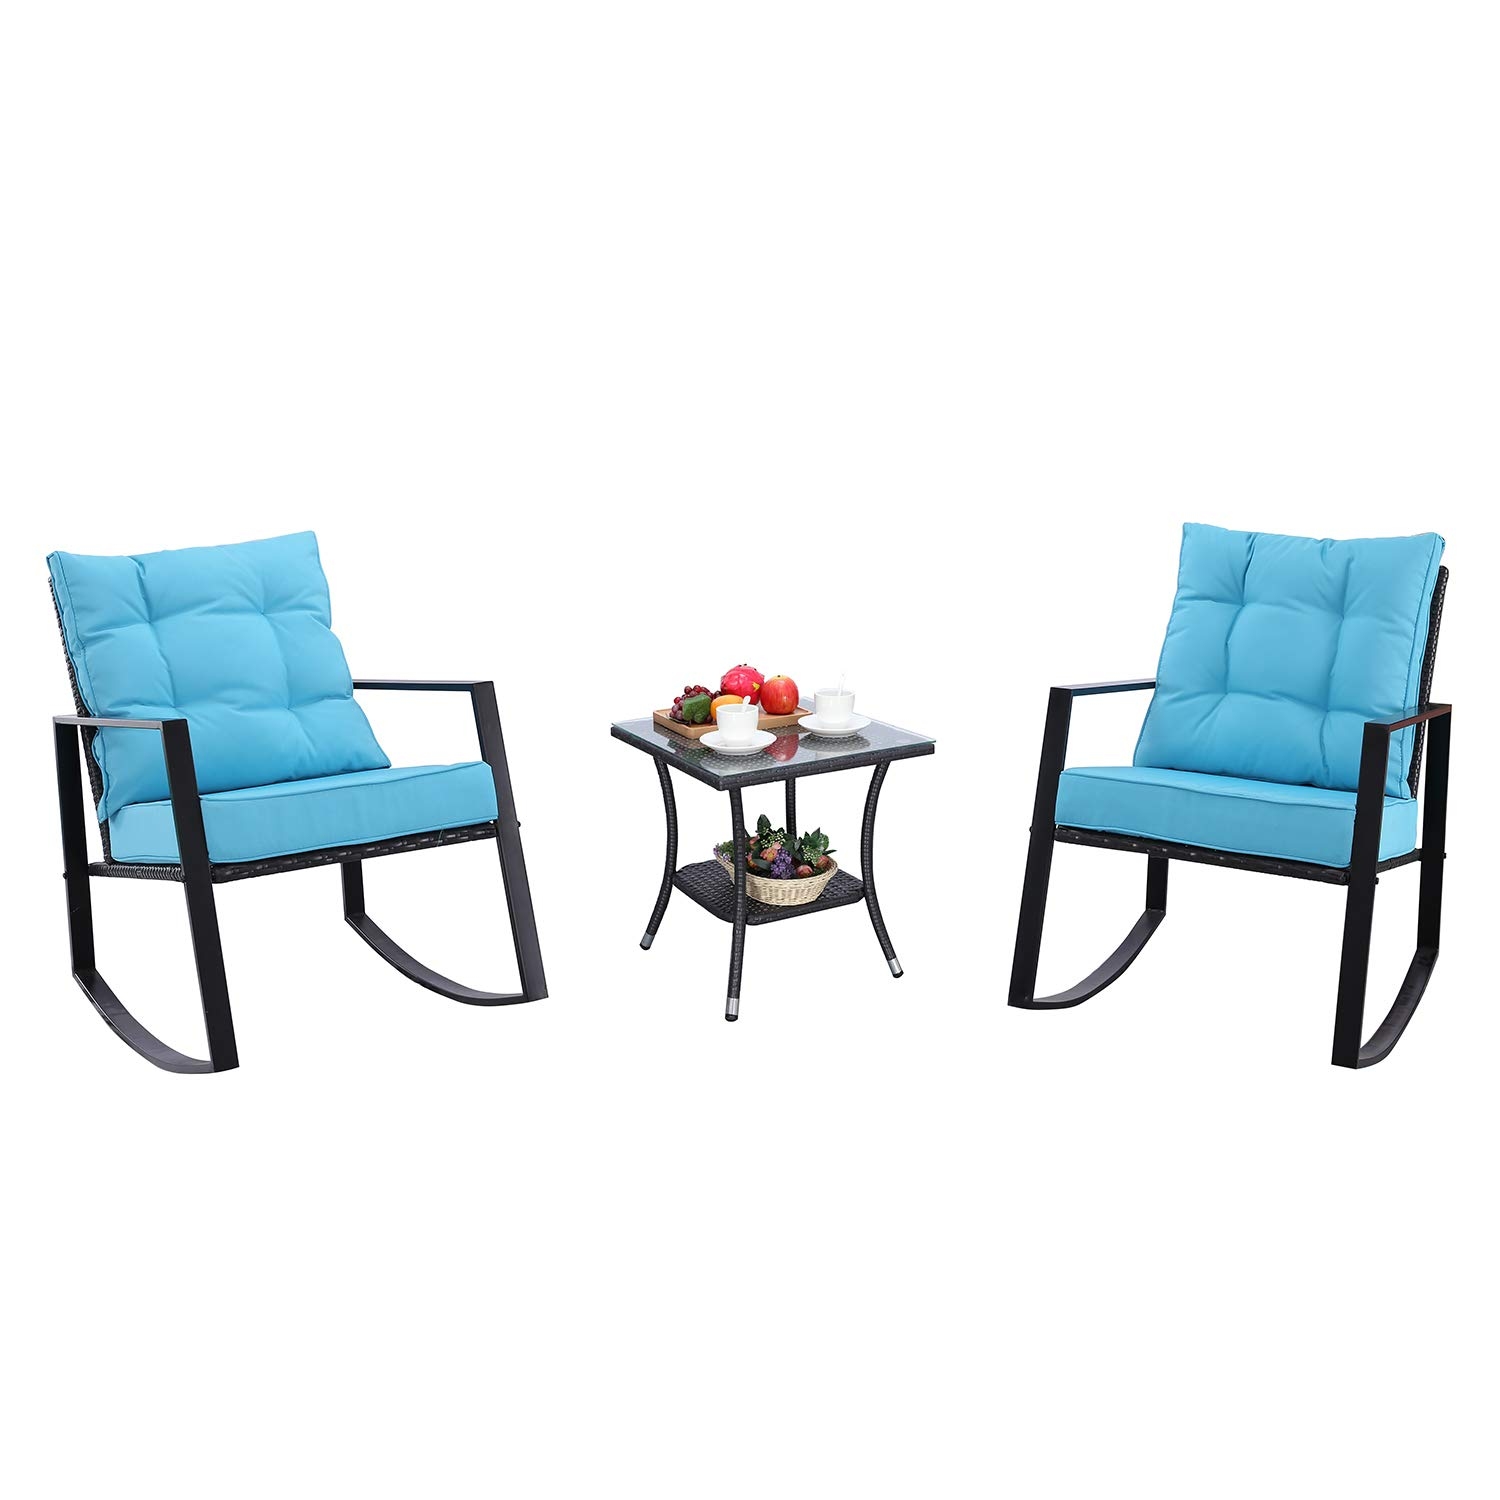 HTTH 3 Pieces Outdoor Rocking Chair Bistro Set Steel Furniture,Rattan Chair Conversation Sets with Coffee Table